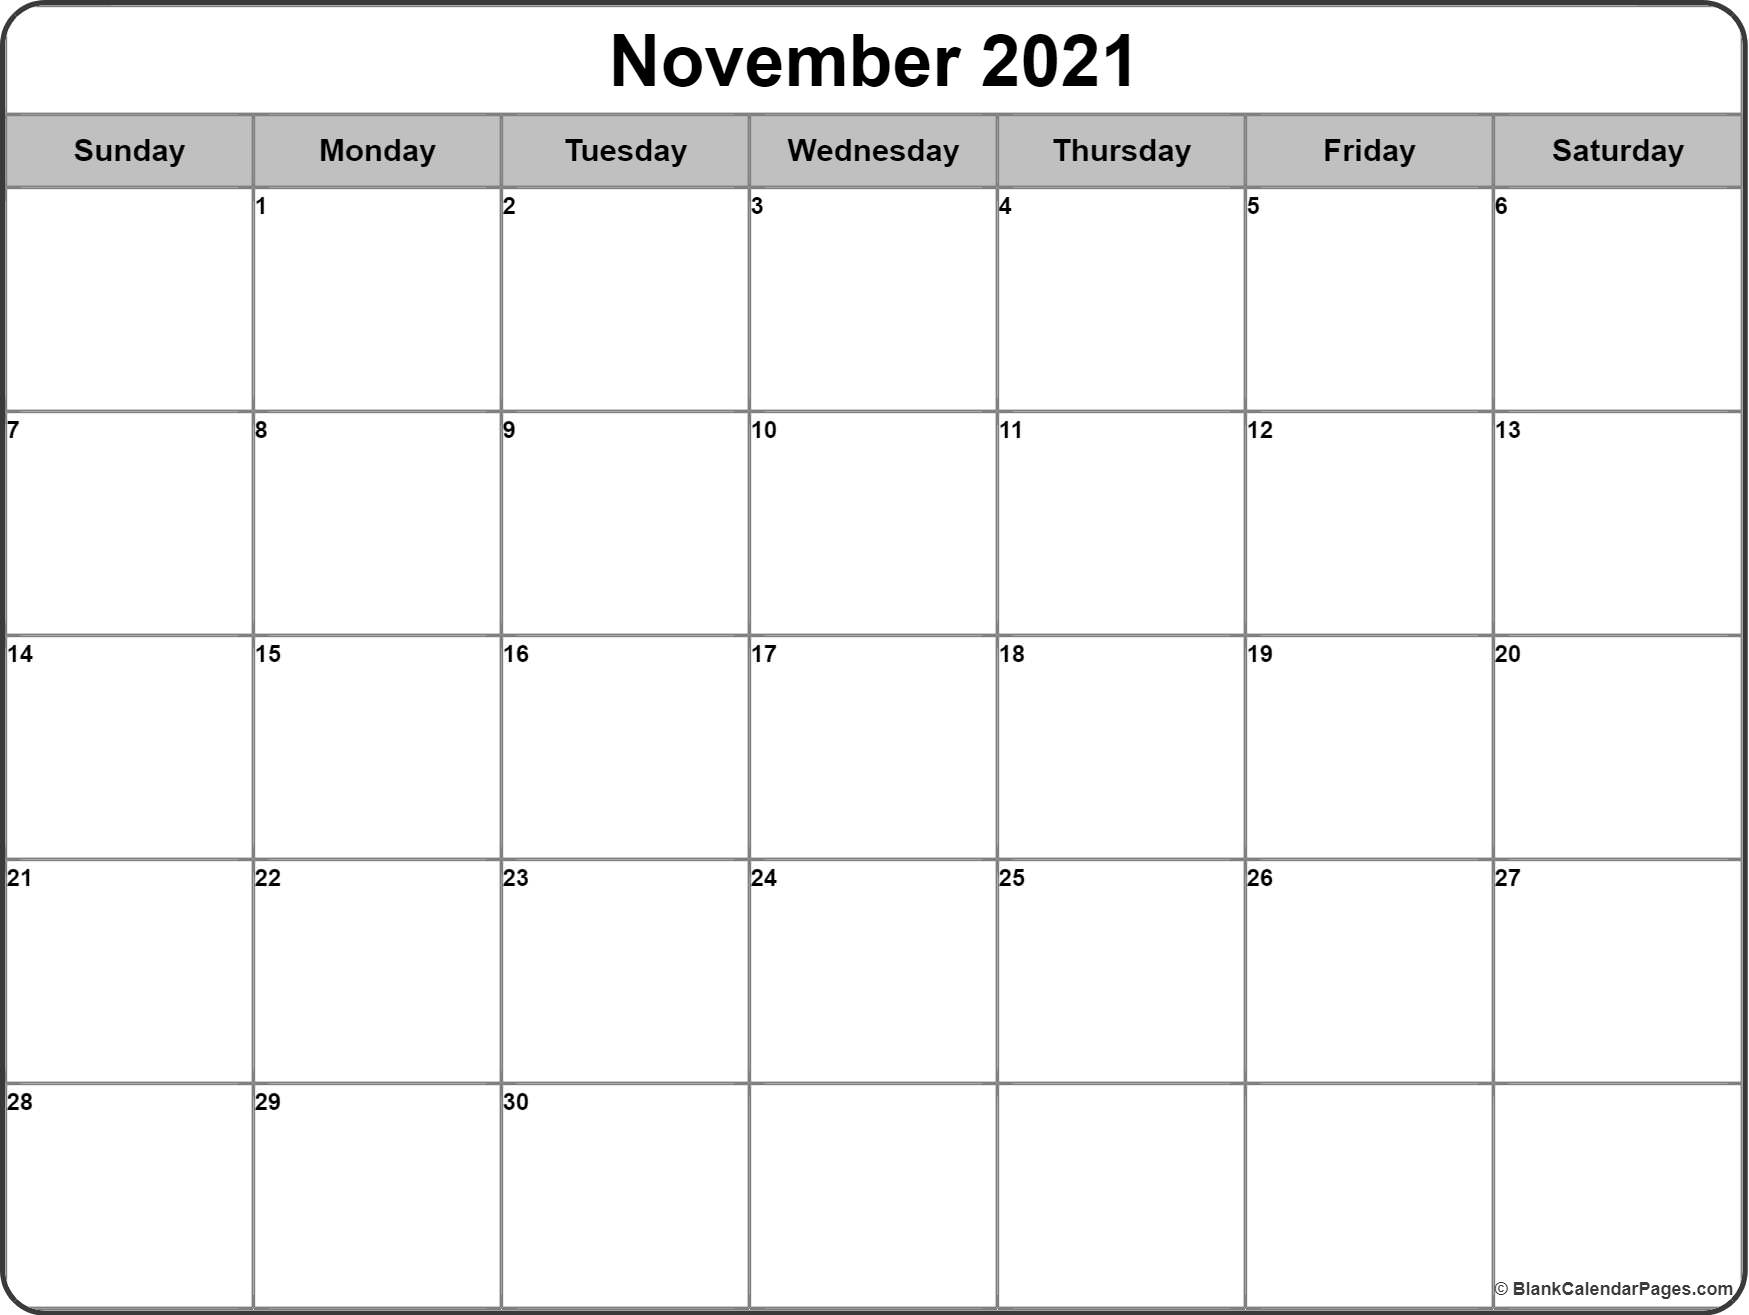 November 2018 calendar * 50+ templates of printable calendars